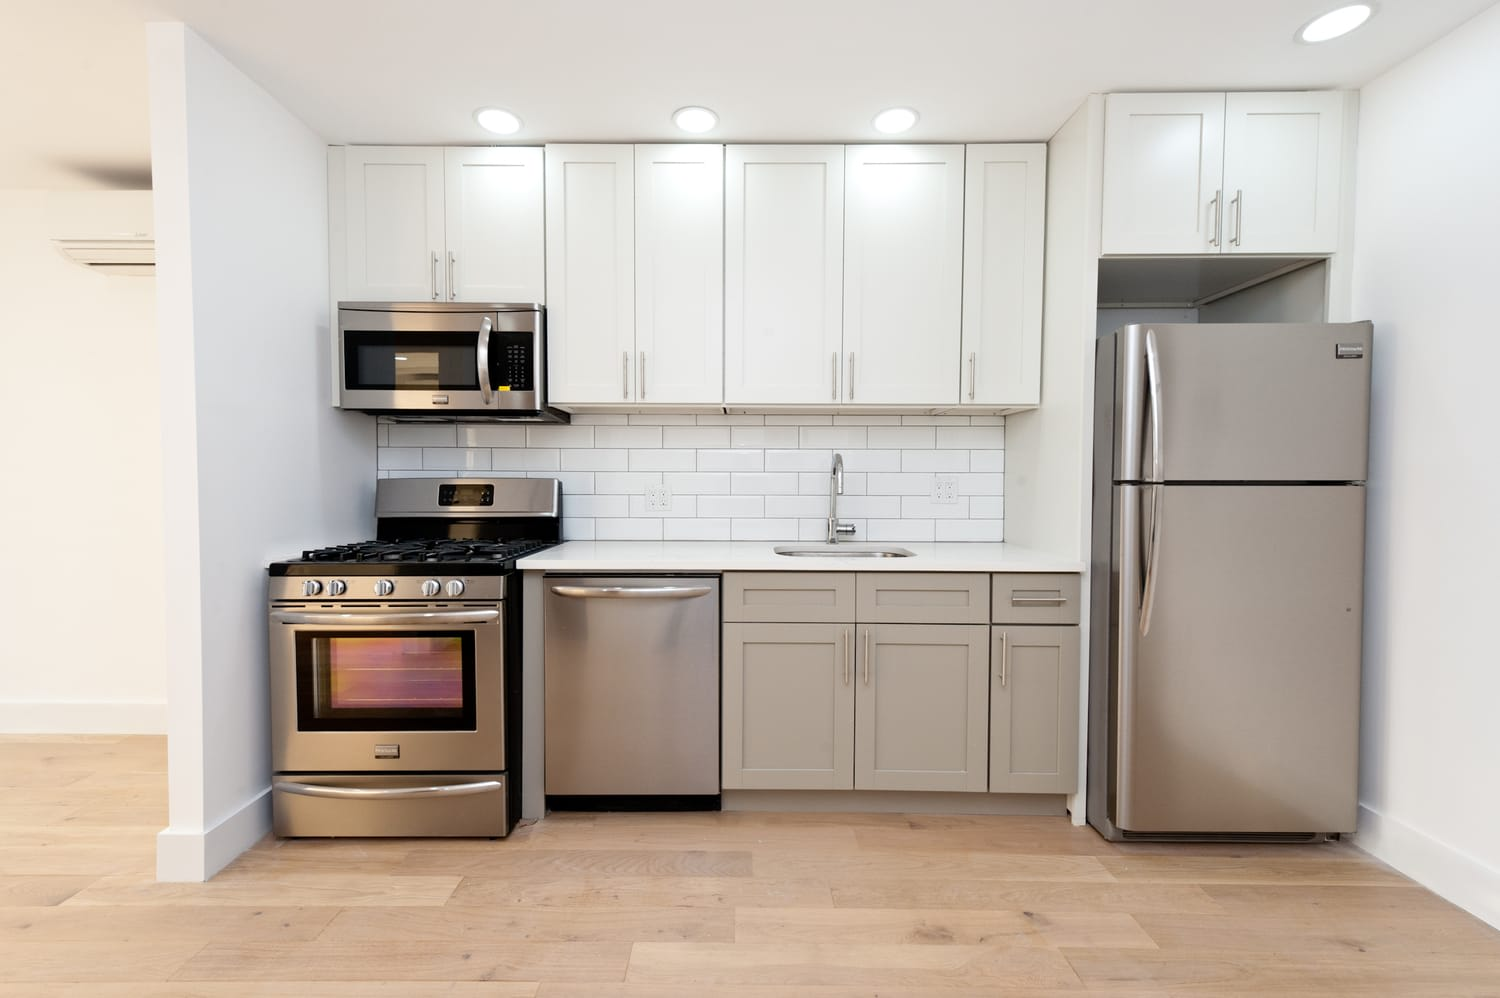 25-10 38th Ave, #6C photo